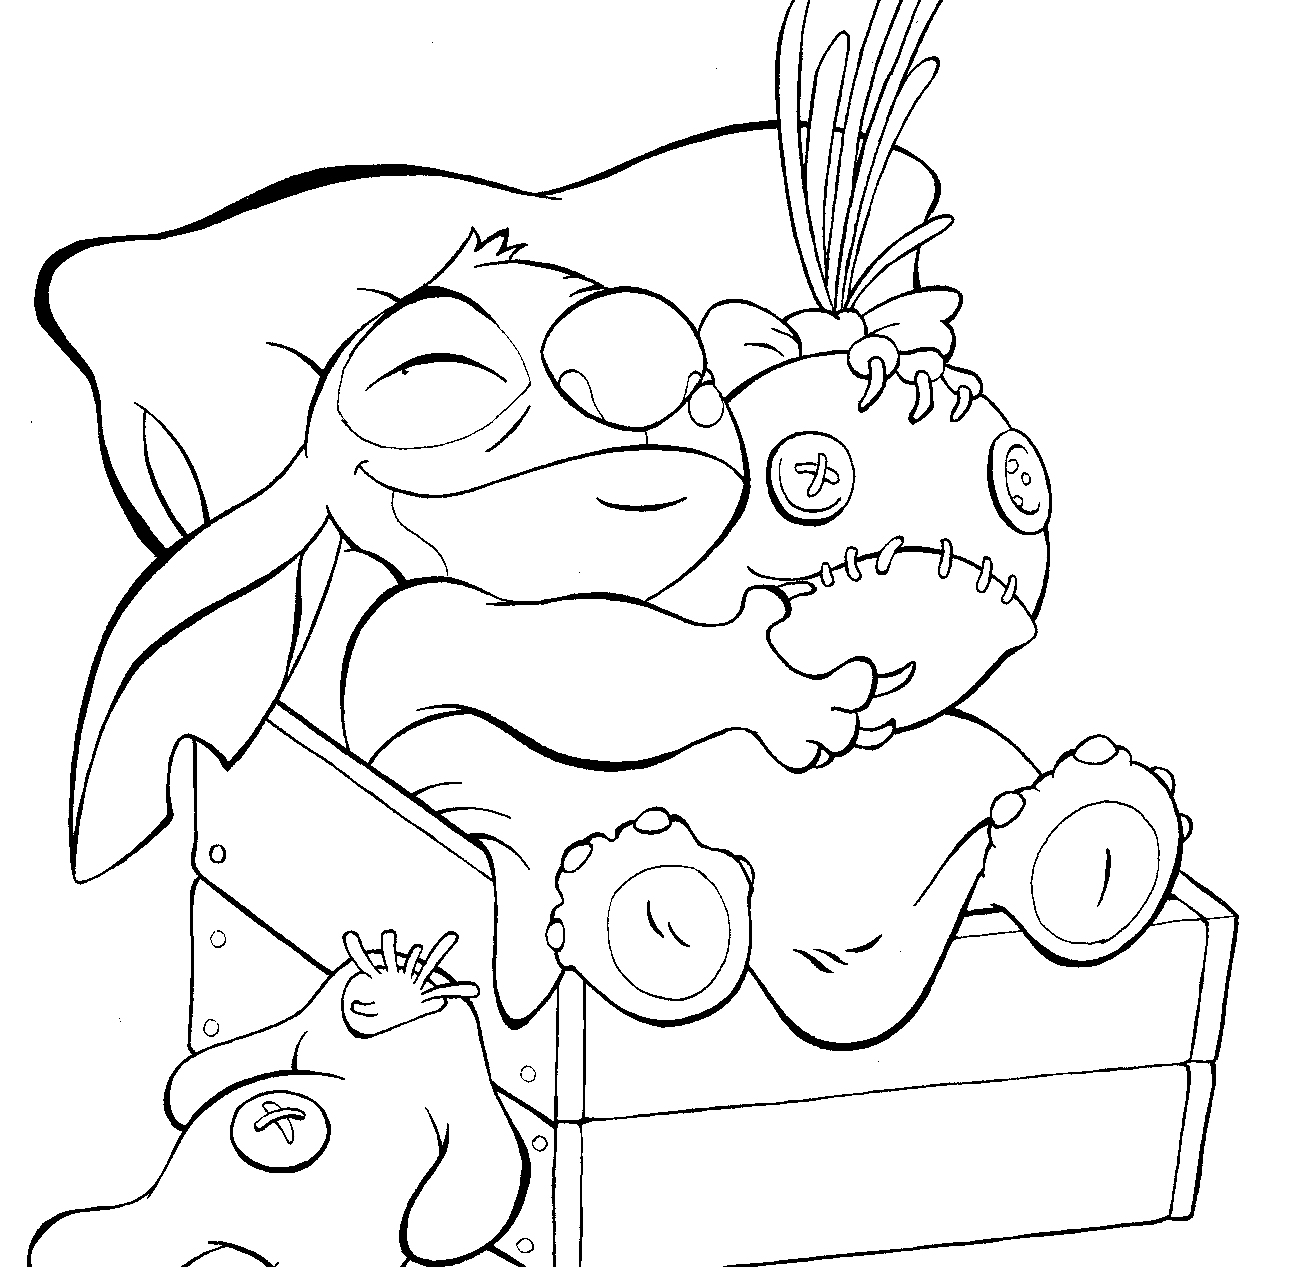 lilo and stitch pictures to print lilo and stitch coloring pages say hi free printable to print and lilo pictures stitch